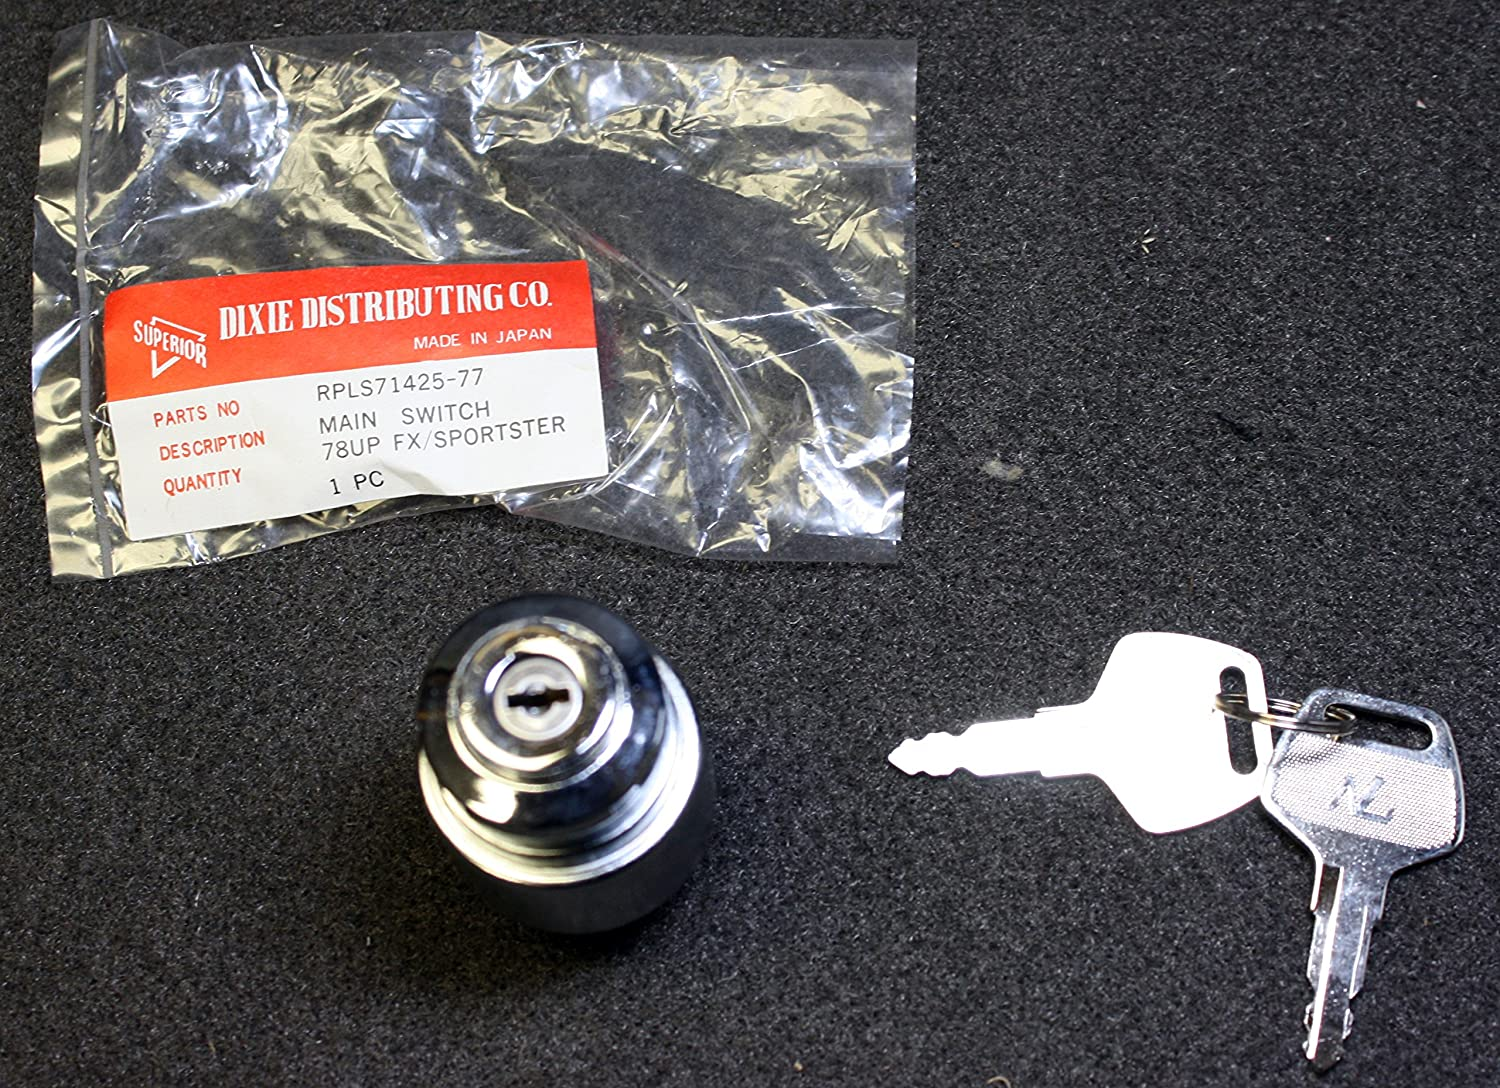 Superior Dixie 71425-77 3 Position Chrome Ignition Main Switch Harley Davidson Dixie Distributing